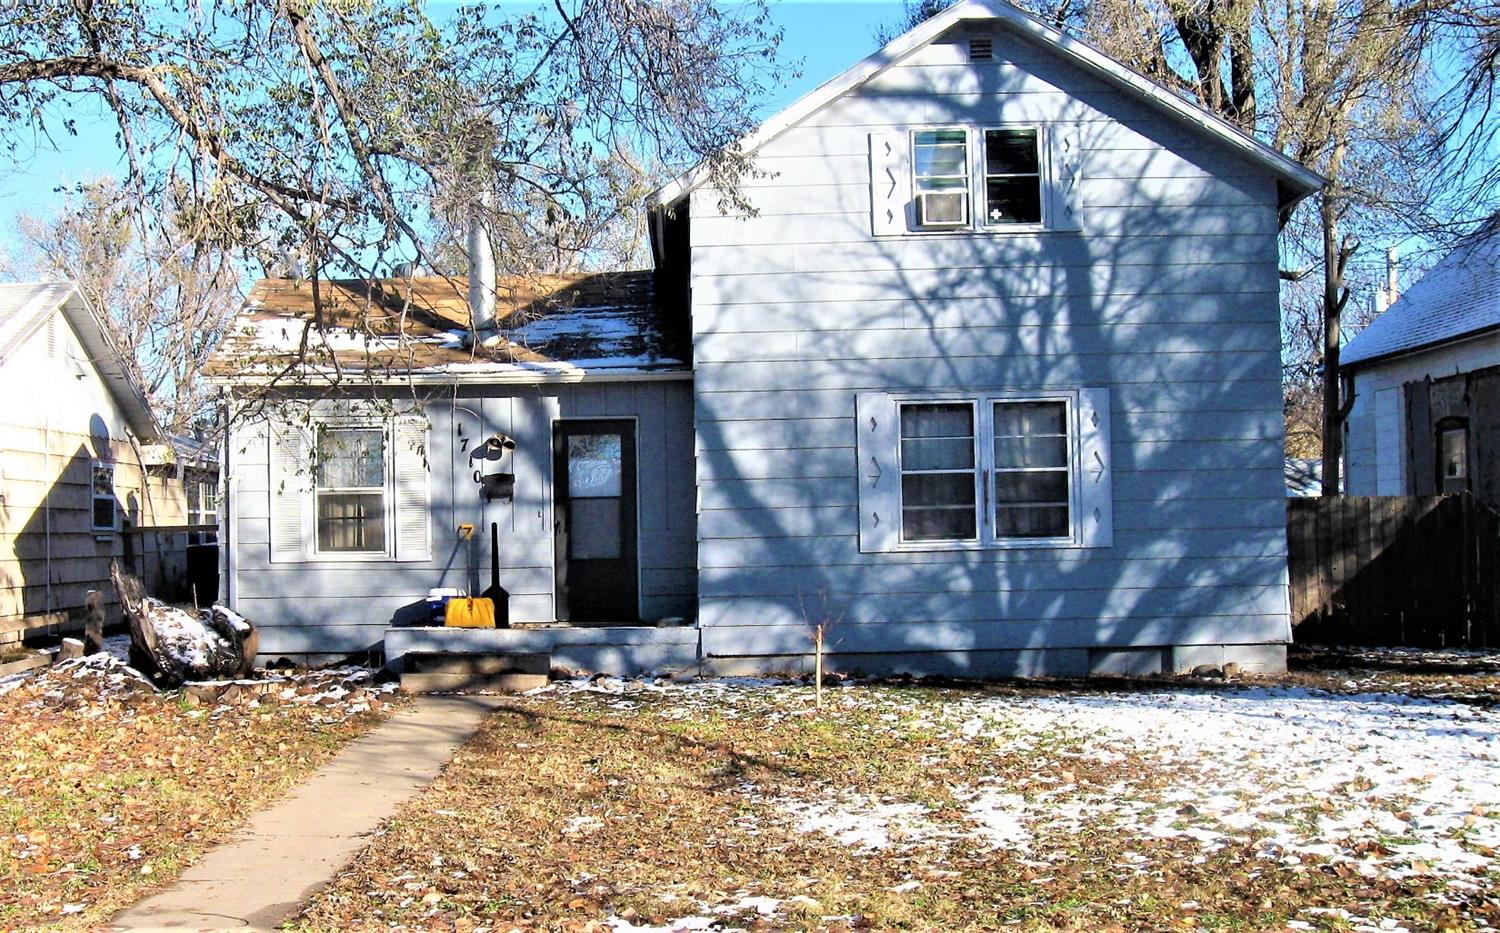 Lots of room in this 2 story home with privacy fence. Property selling in its present condition, as is, where is with no warranties expressed or implied.